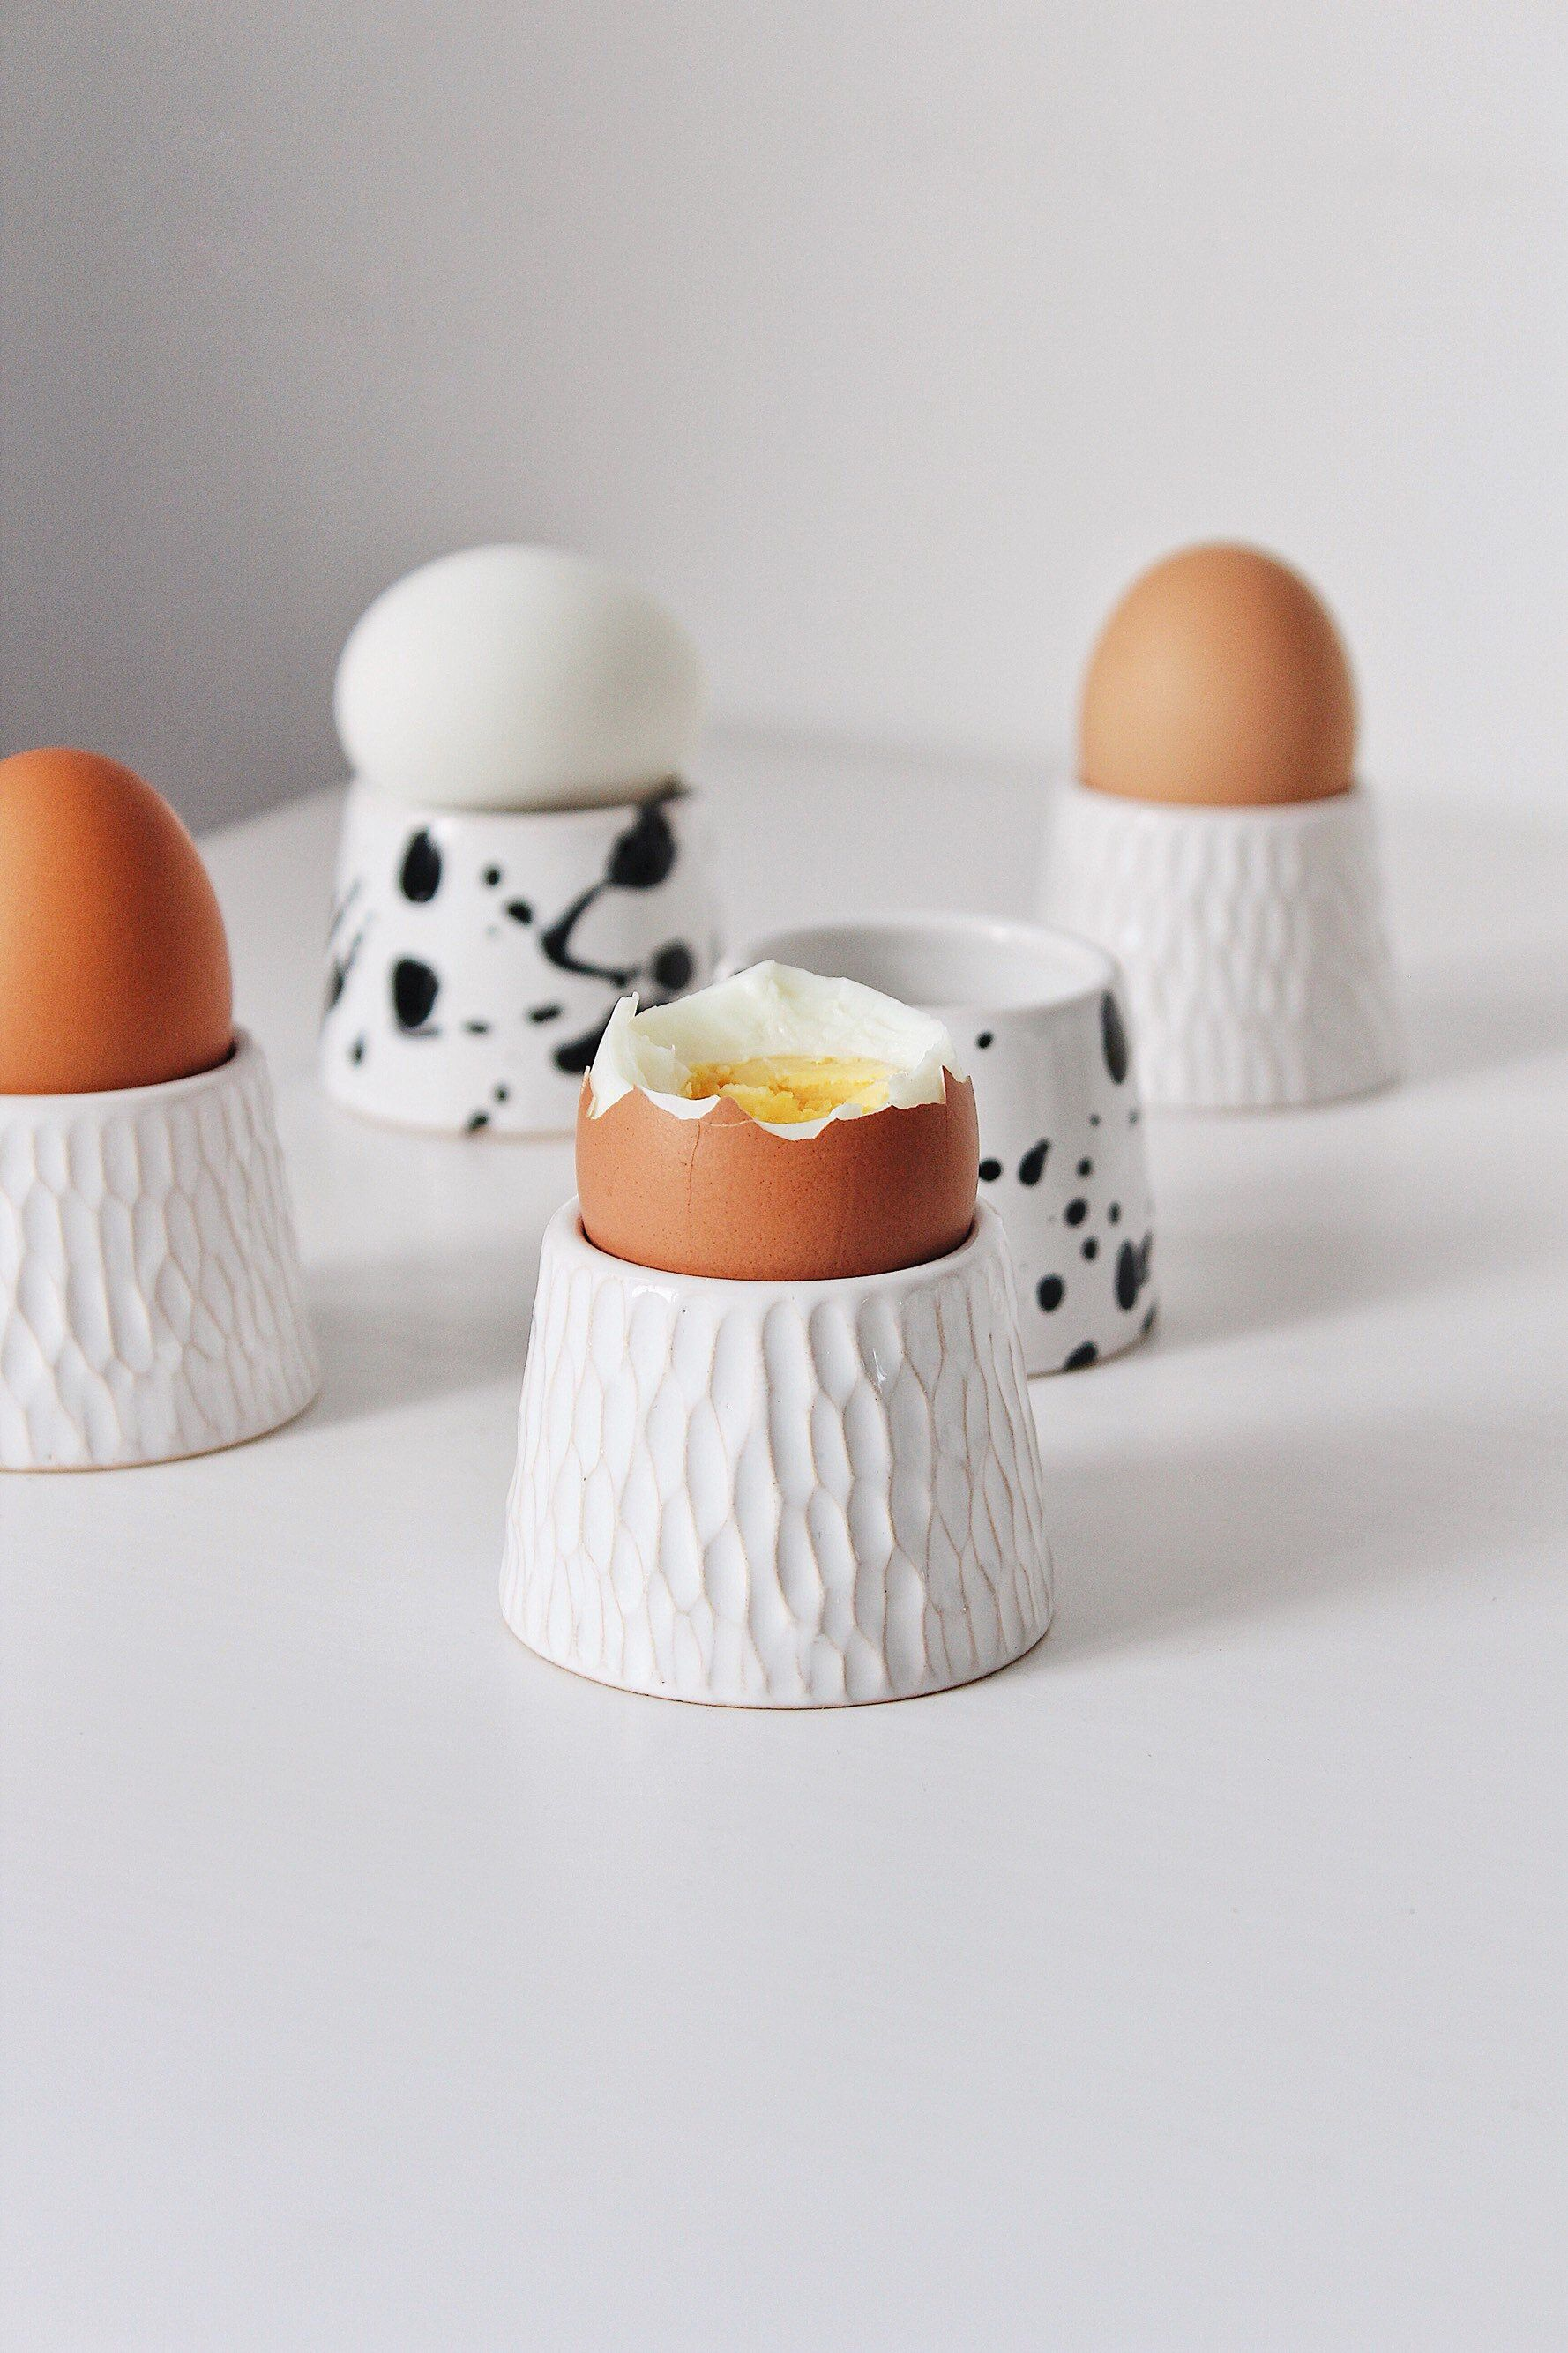 Ceramic egg cup, Pottery egg cups, Unique ceramic egg holder, Stoneware egg cup set, White pottery dish, Egg cup Modern stoneware dinnerware